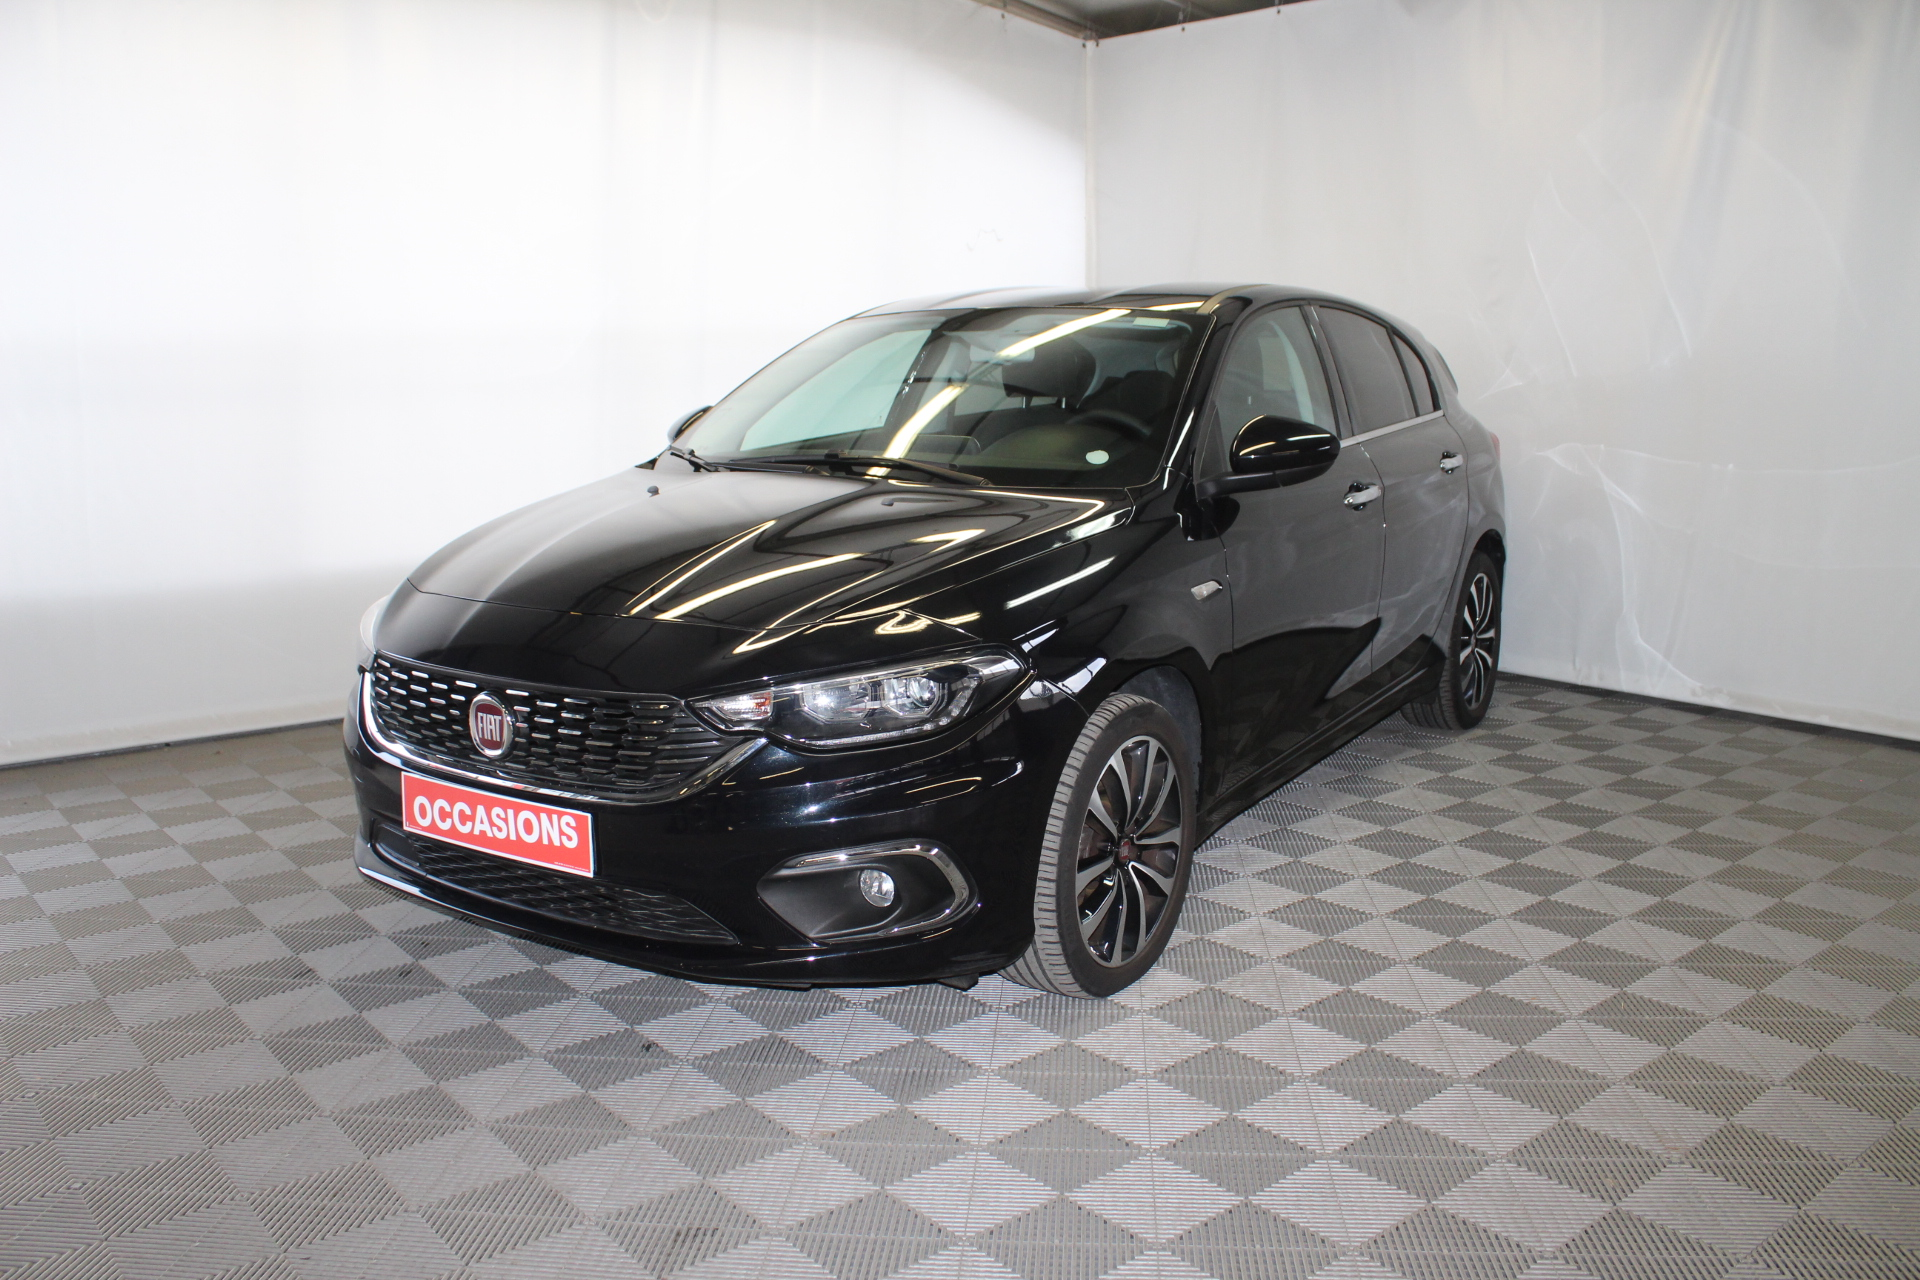 FIAT TIPO 1.6 120CV MULTIJET 5P LOUNGE d'occasion